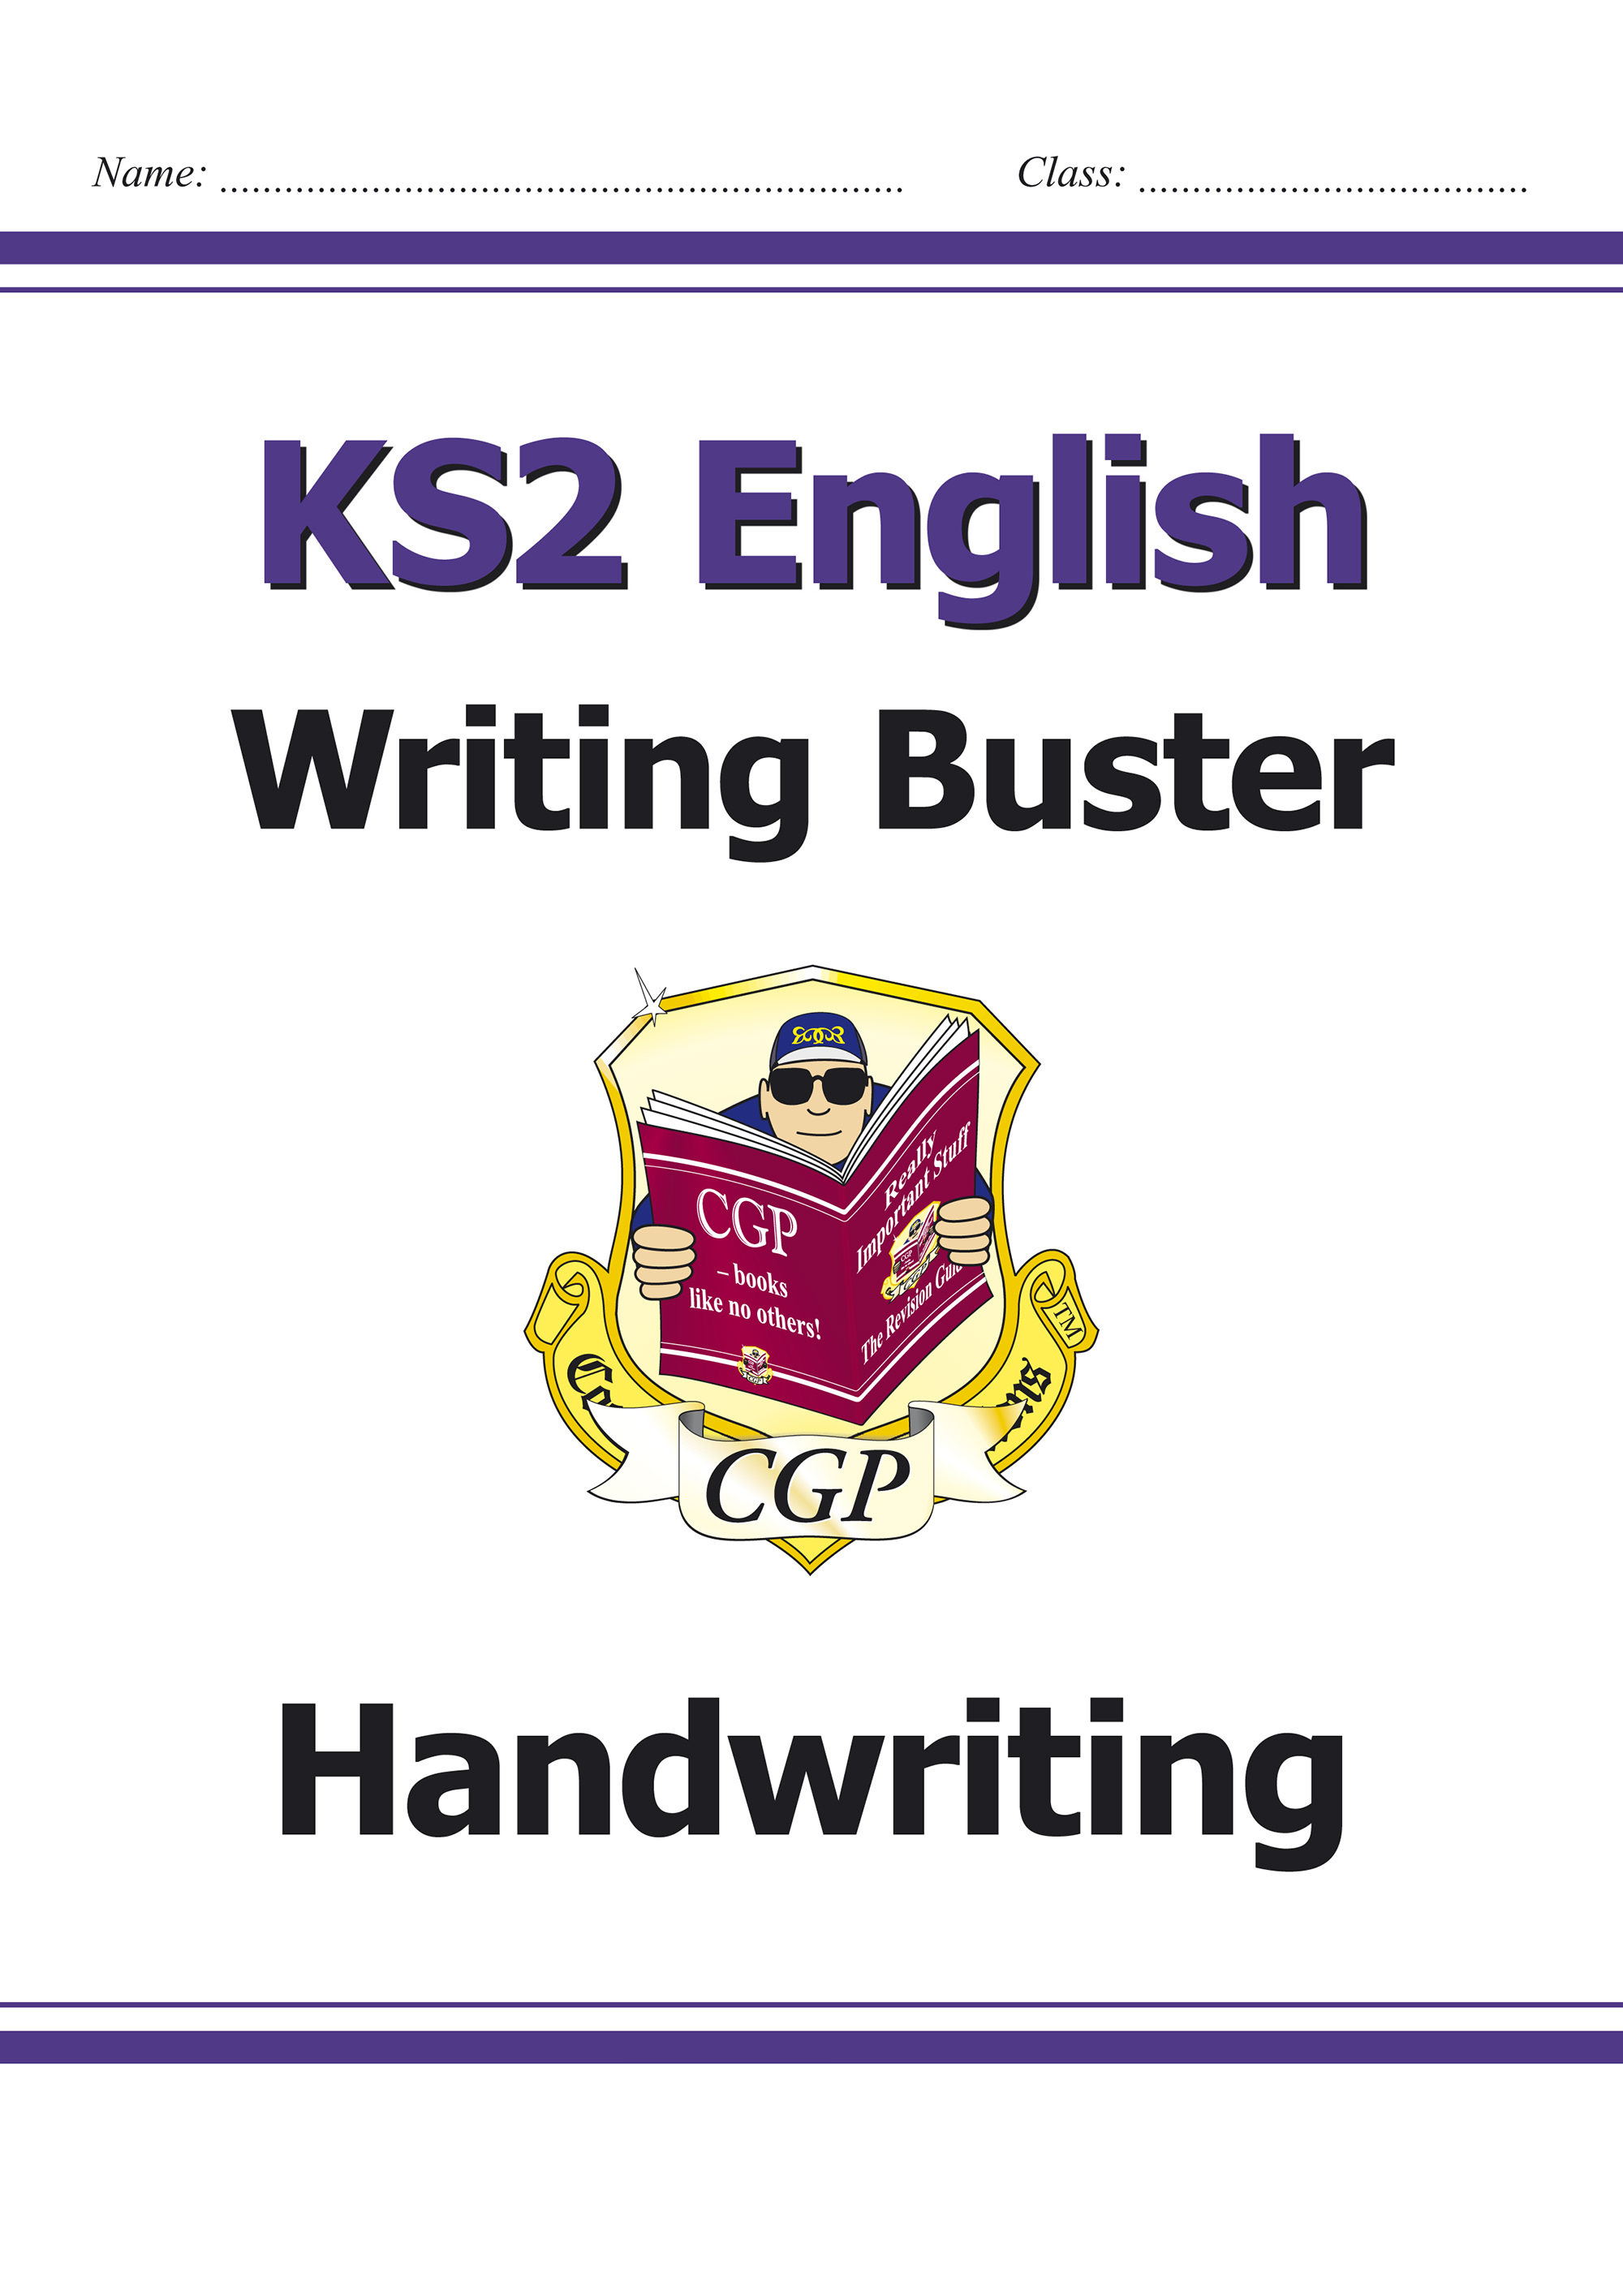 E6H23 - KS2 English Writing Buster - Handwriting